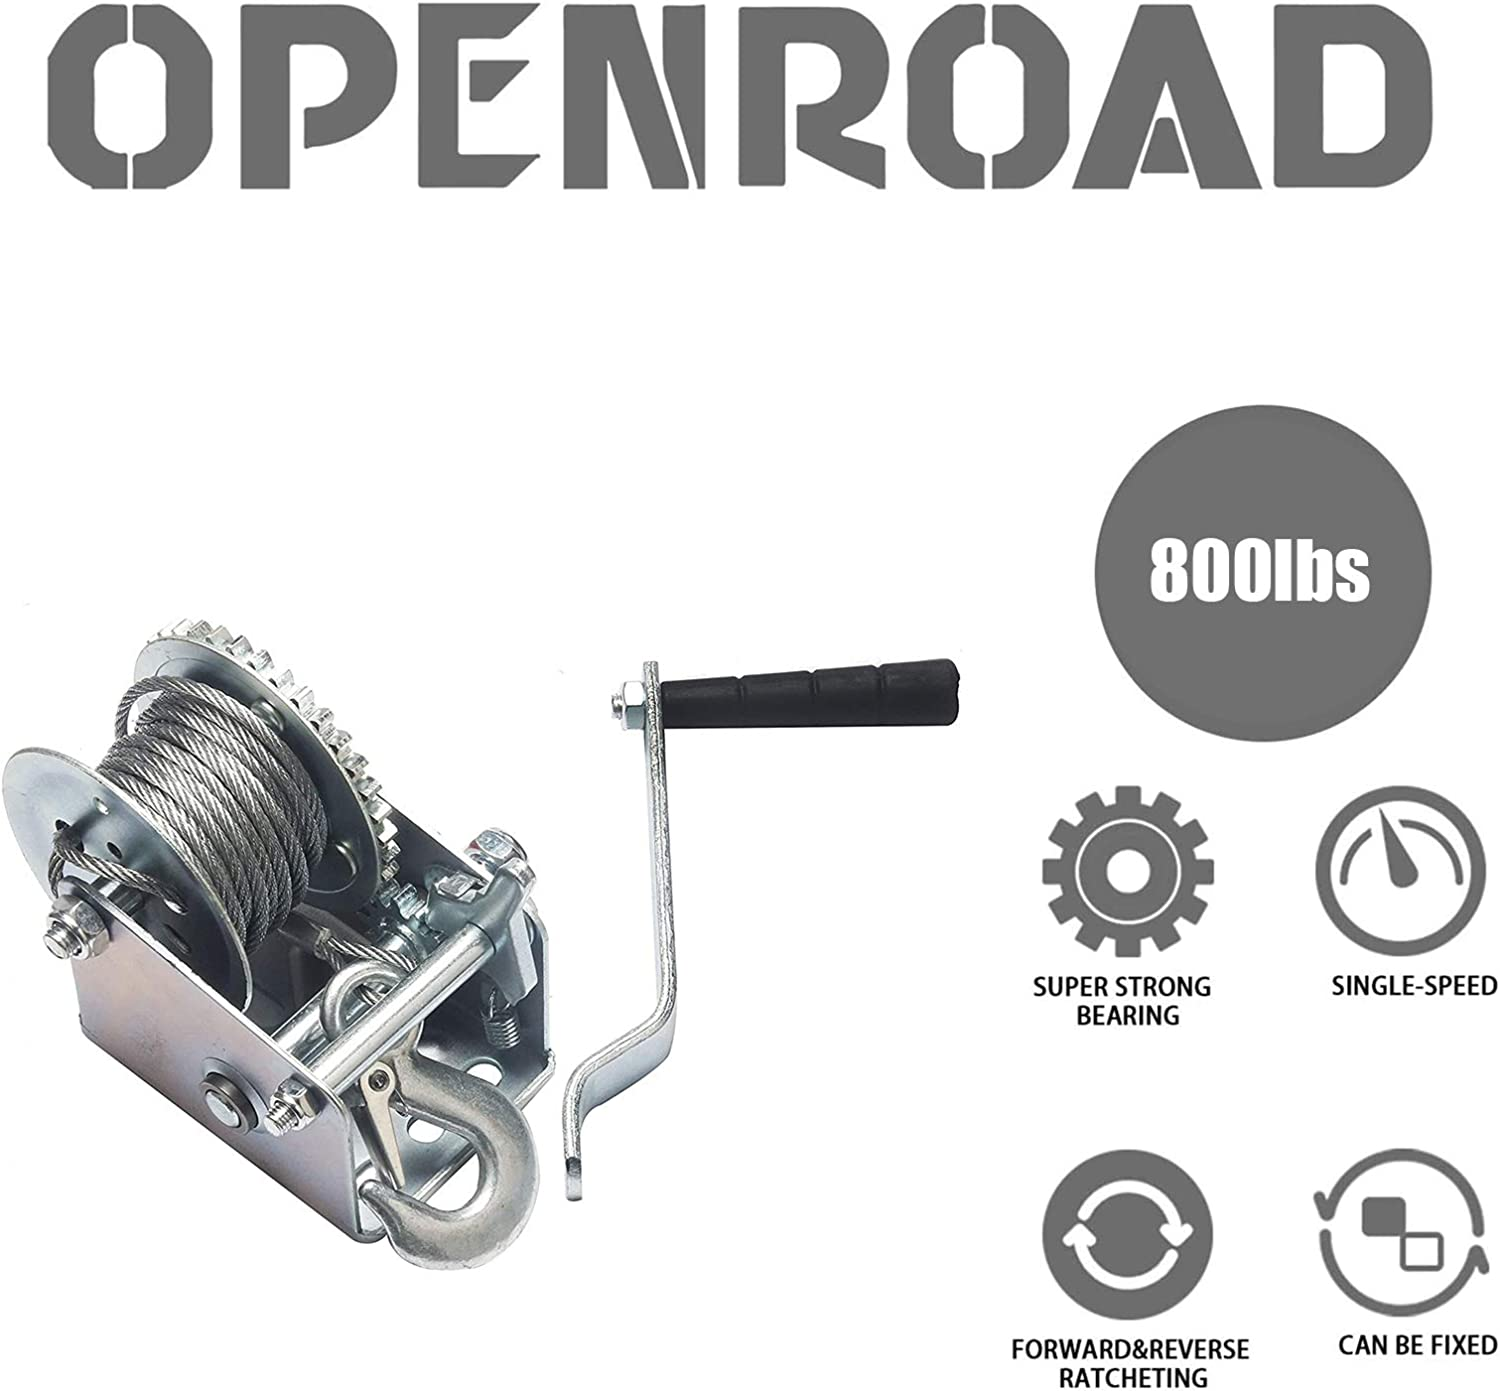 26ft Manual Winch Operated Two-Way Ratchet Boat Trailer Marine Winch Hand Crank Winch with 8m OPENROAD 800lbs Hand Winch Towing Winch(800lbs